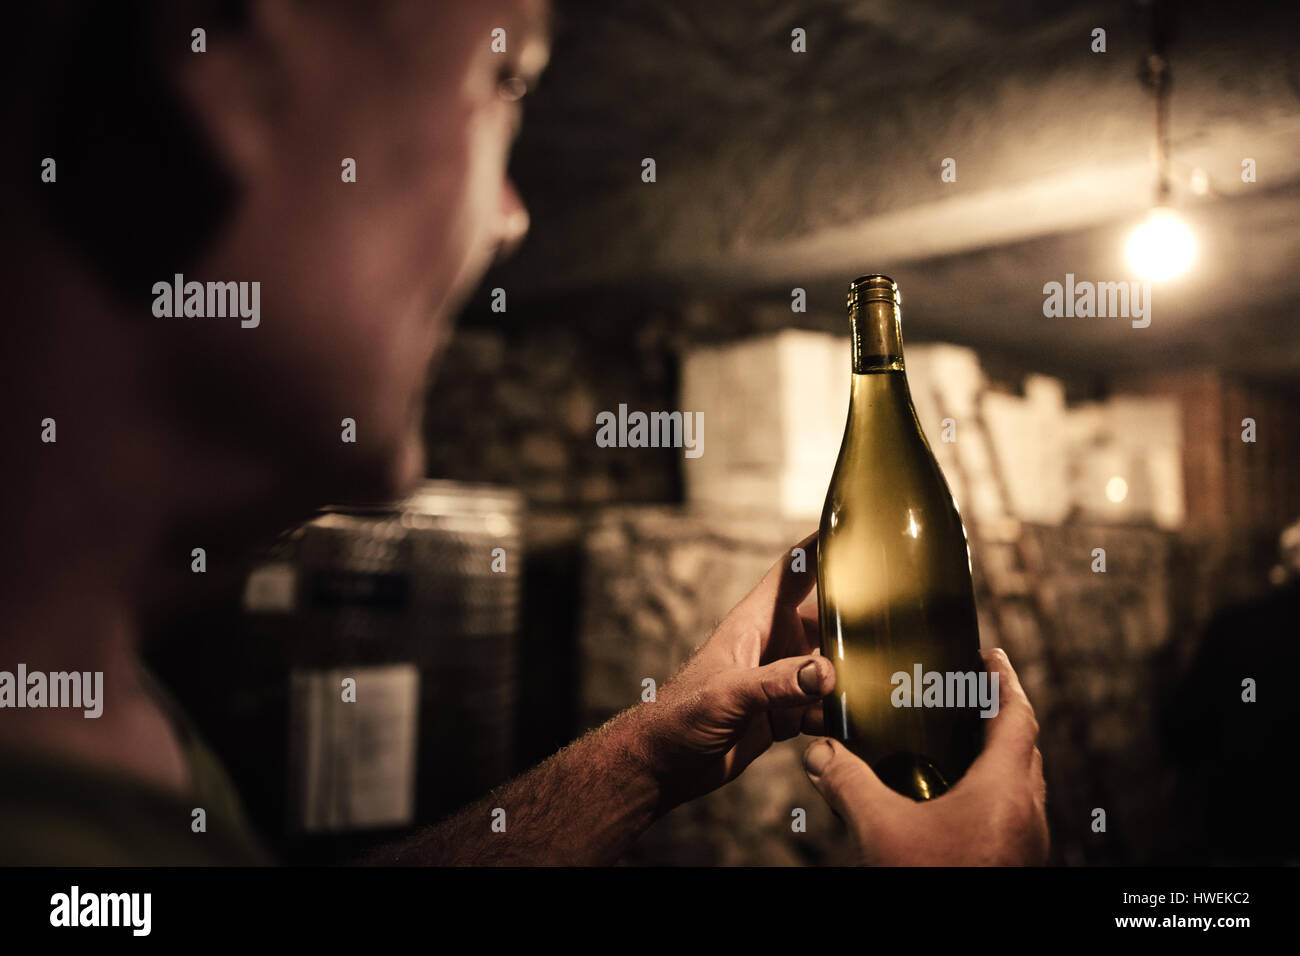 Winemaker gazing at wine bottle in cellar - Stock Image